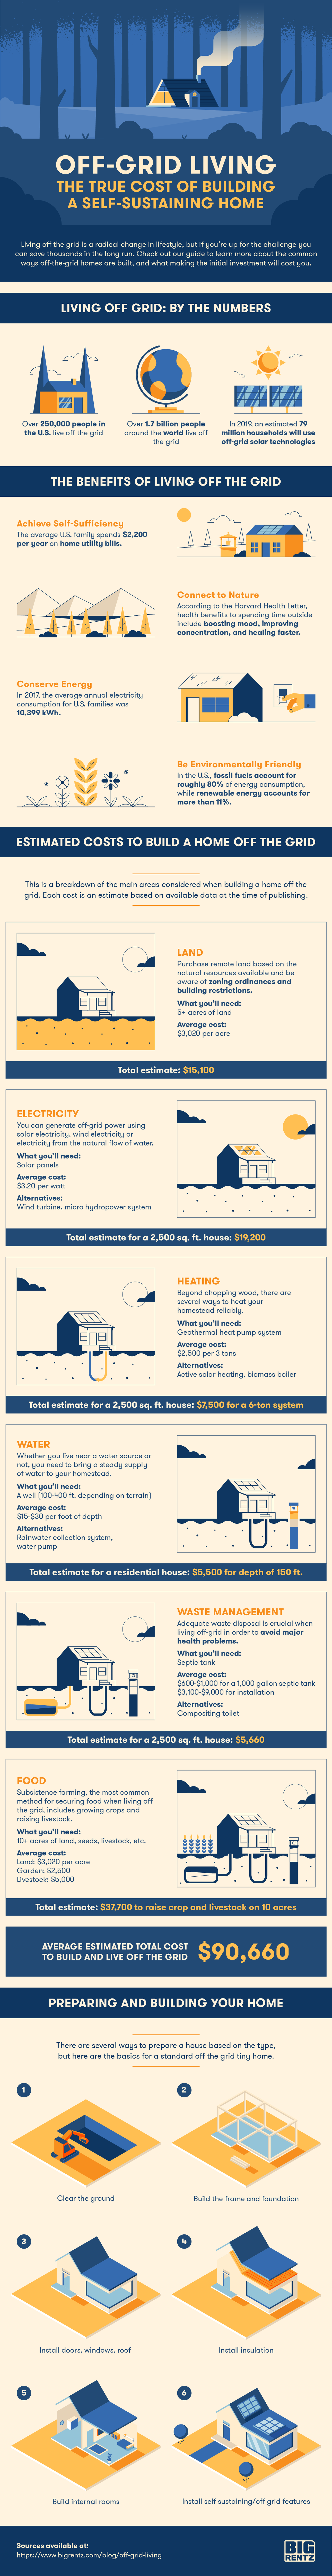 Off grid living has many benefits and will cost an average of $90,660 and build.